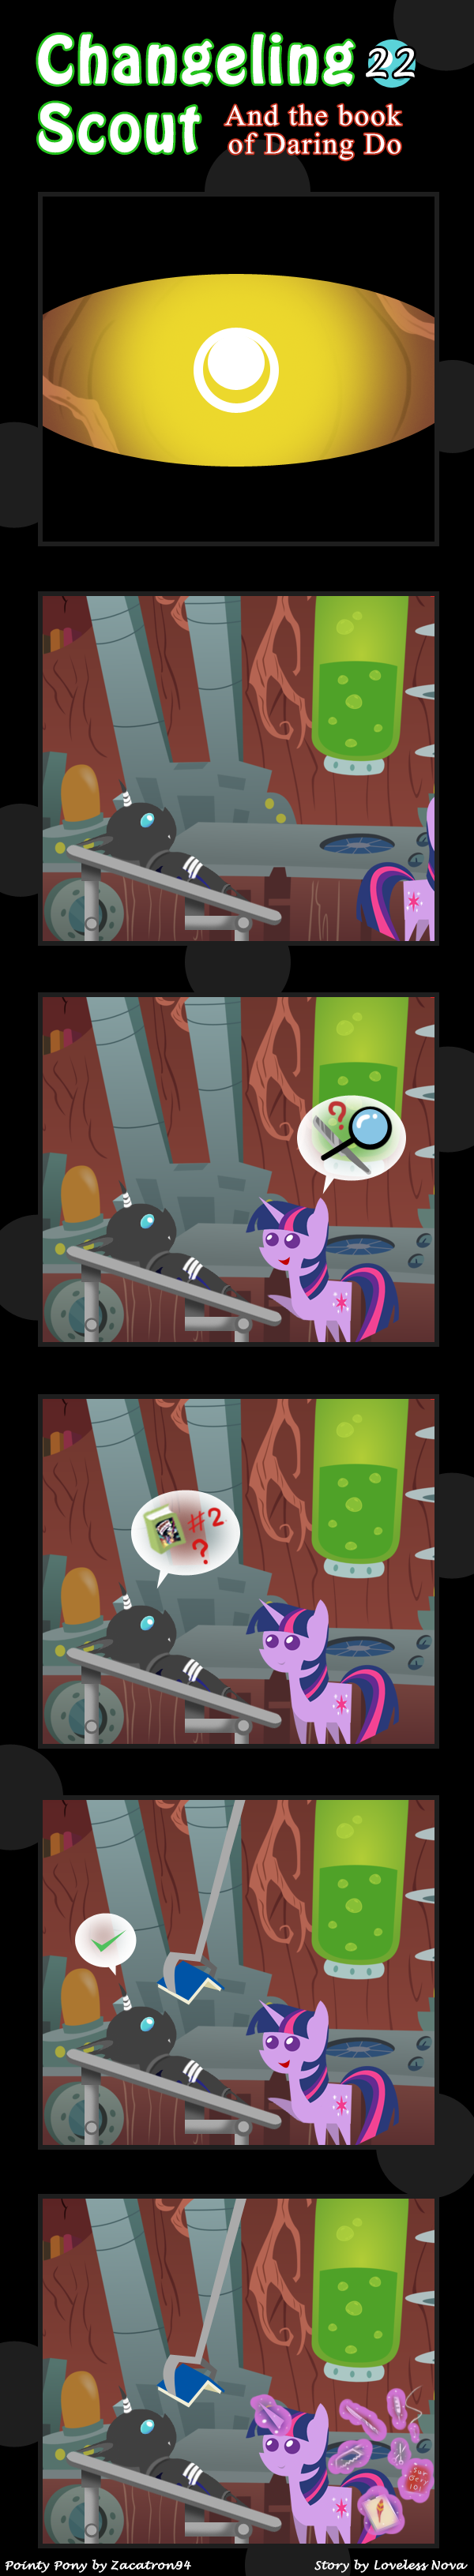 Changeling Scout And The Book Of Daring Do 22